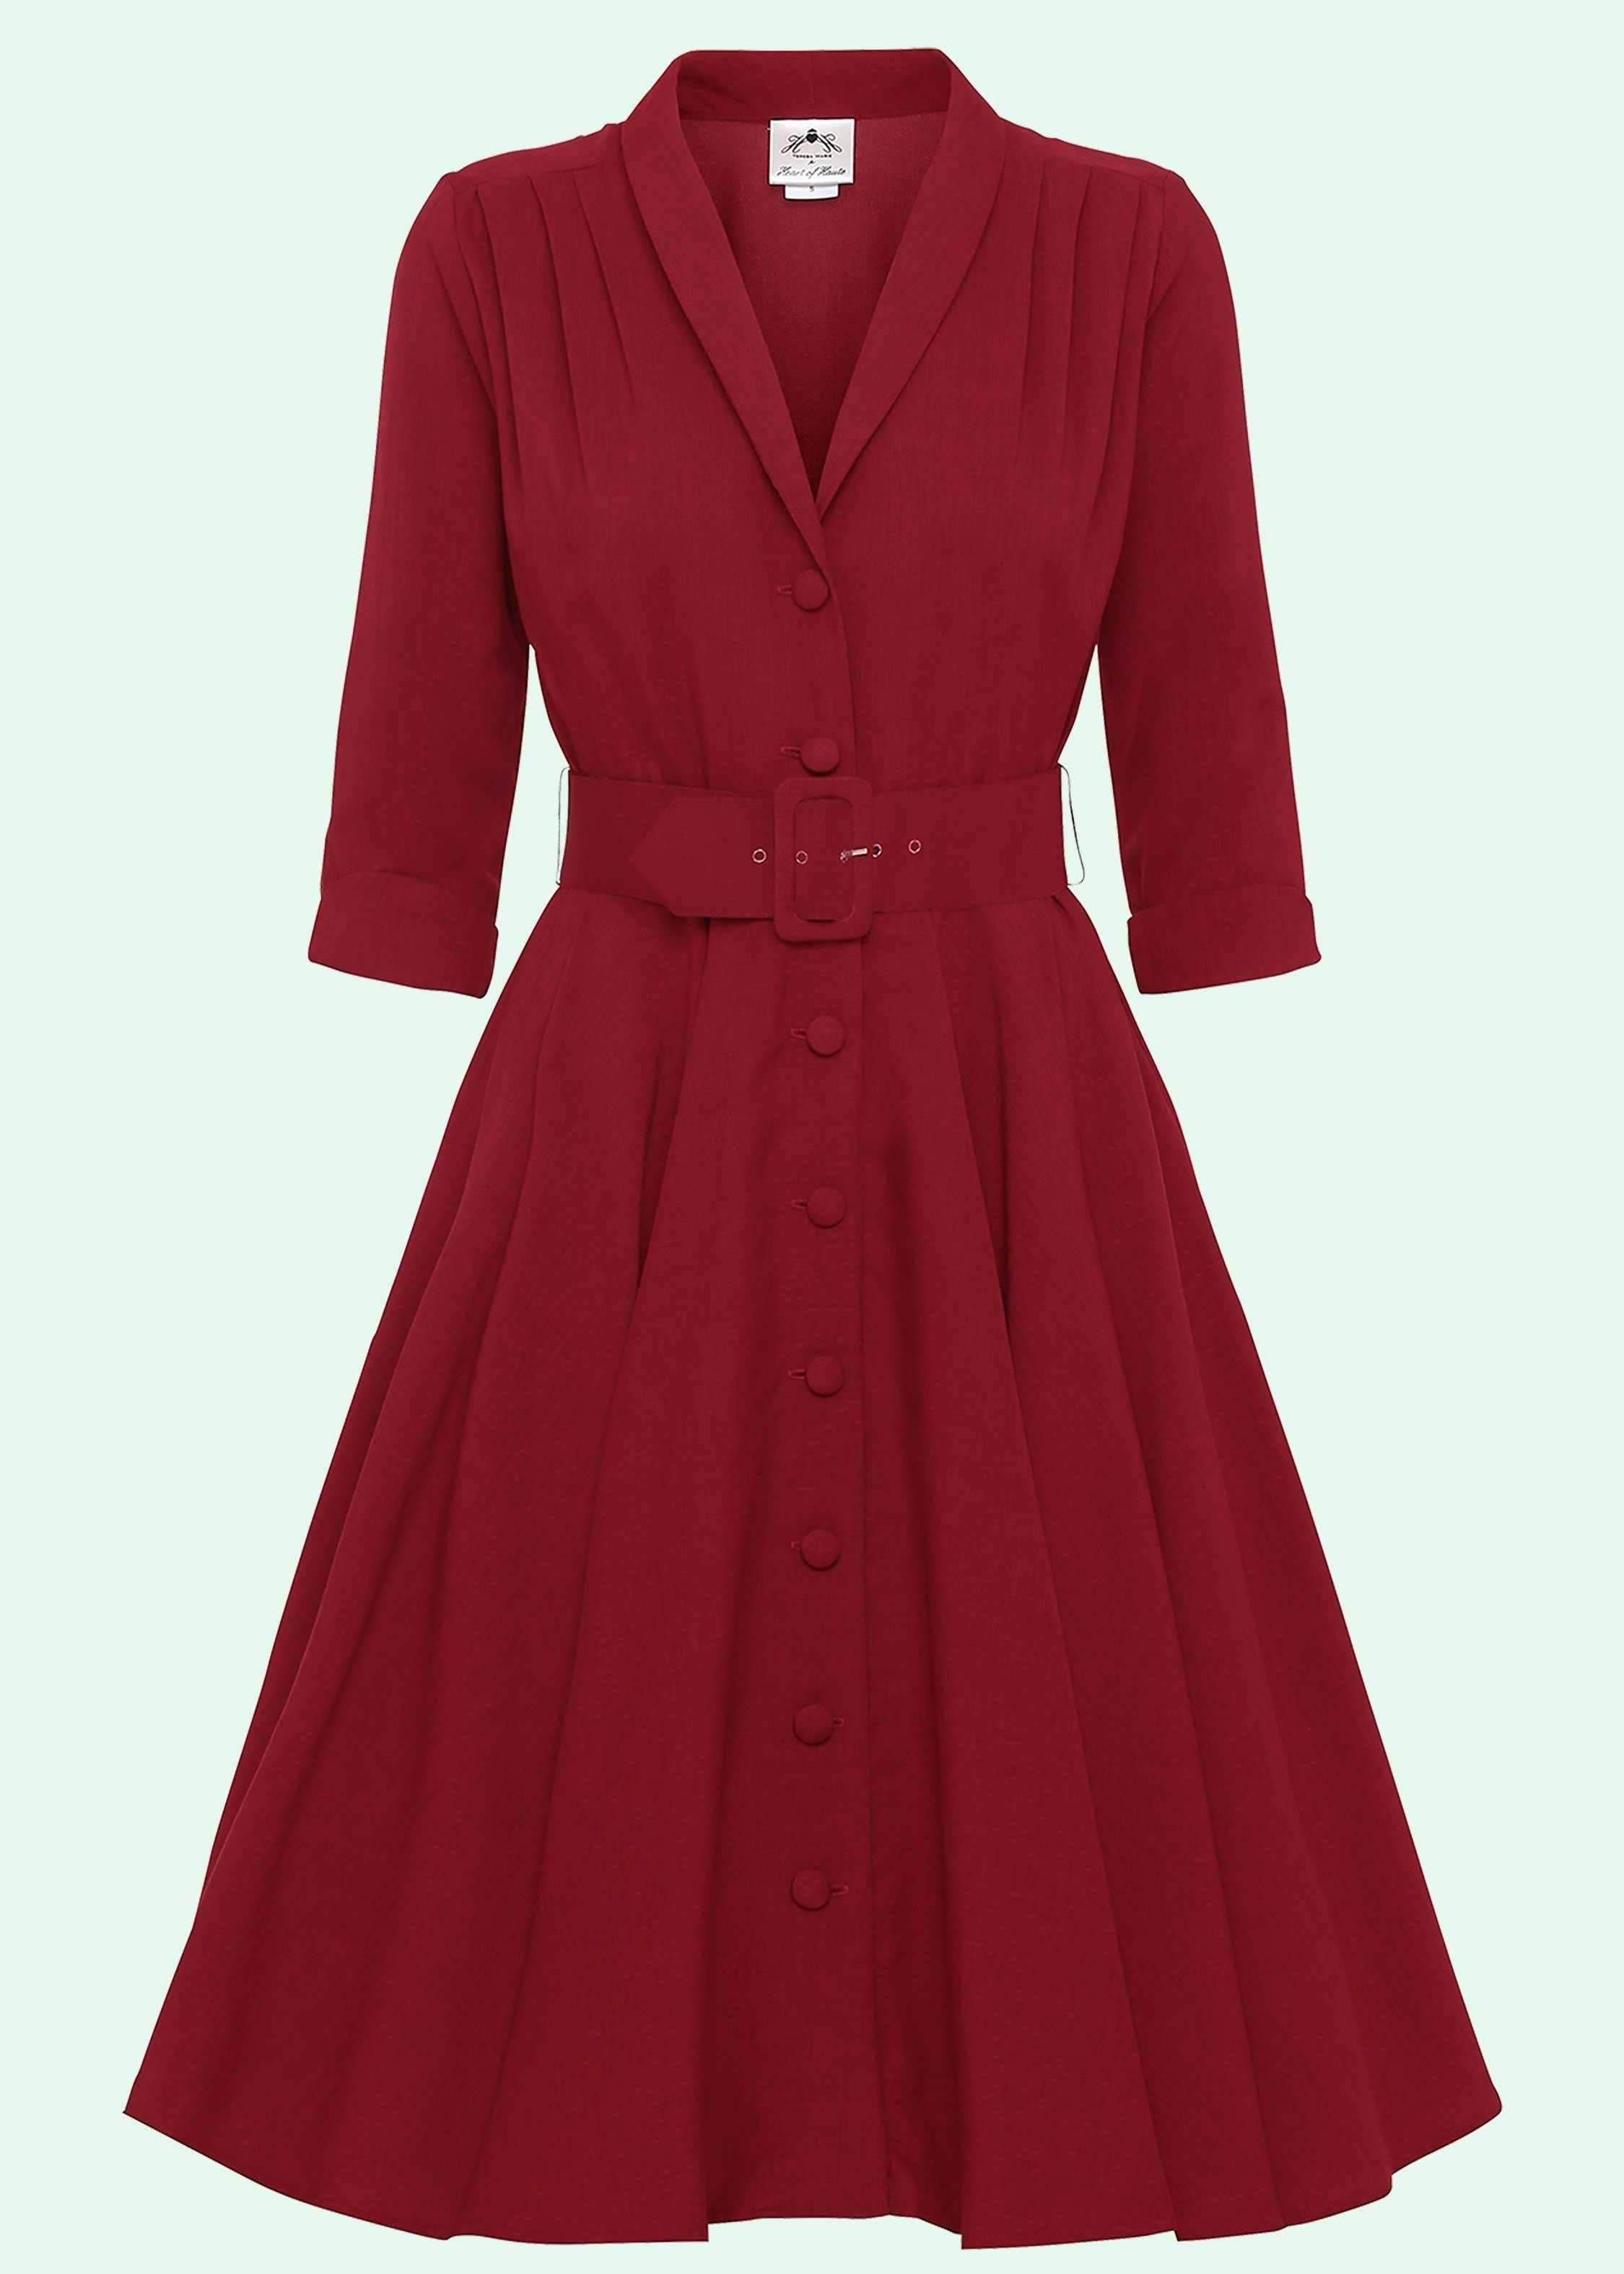 Shirt dress in red from Heart of Haute